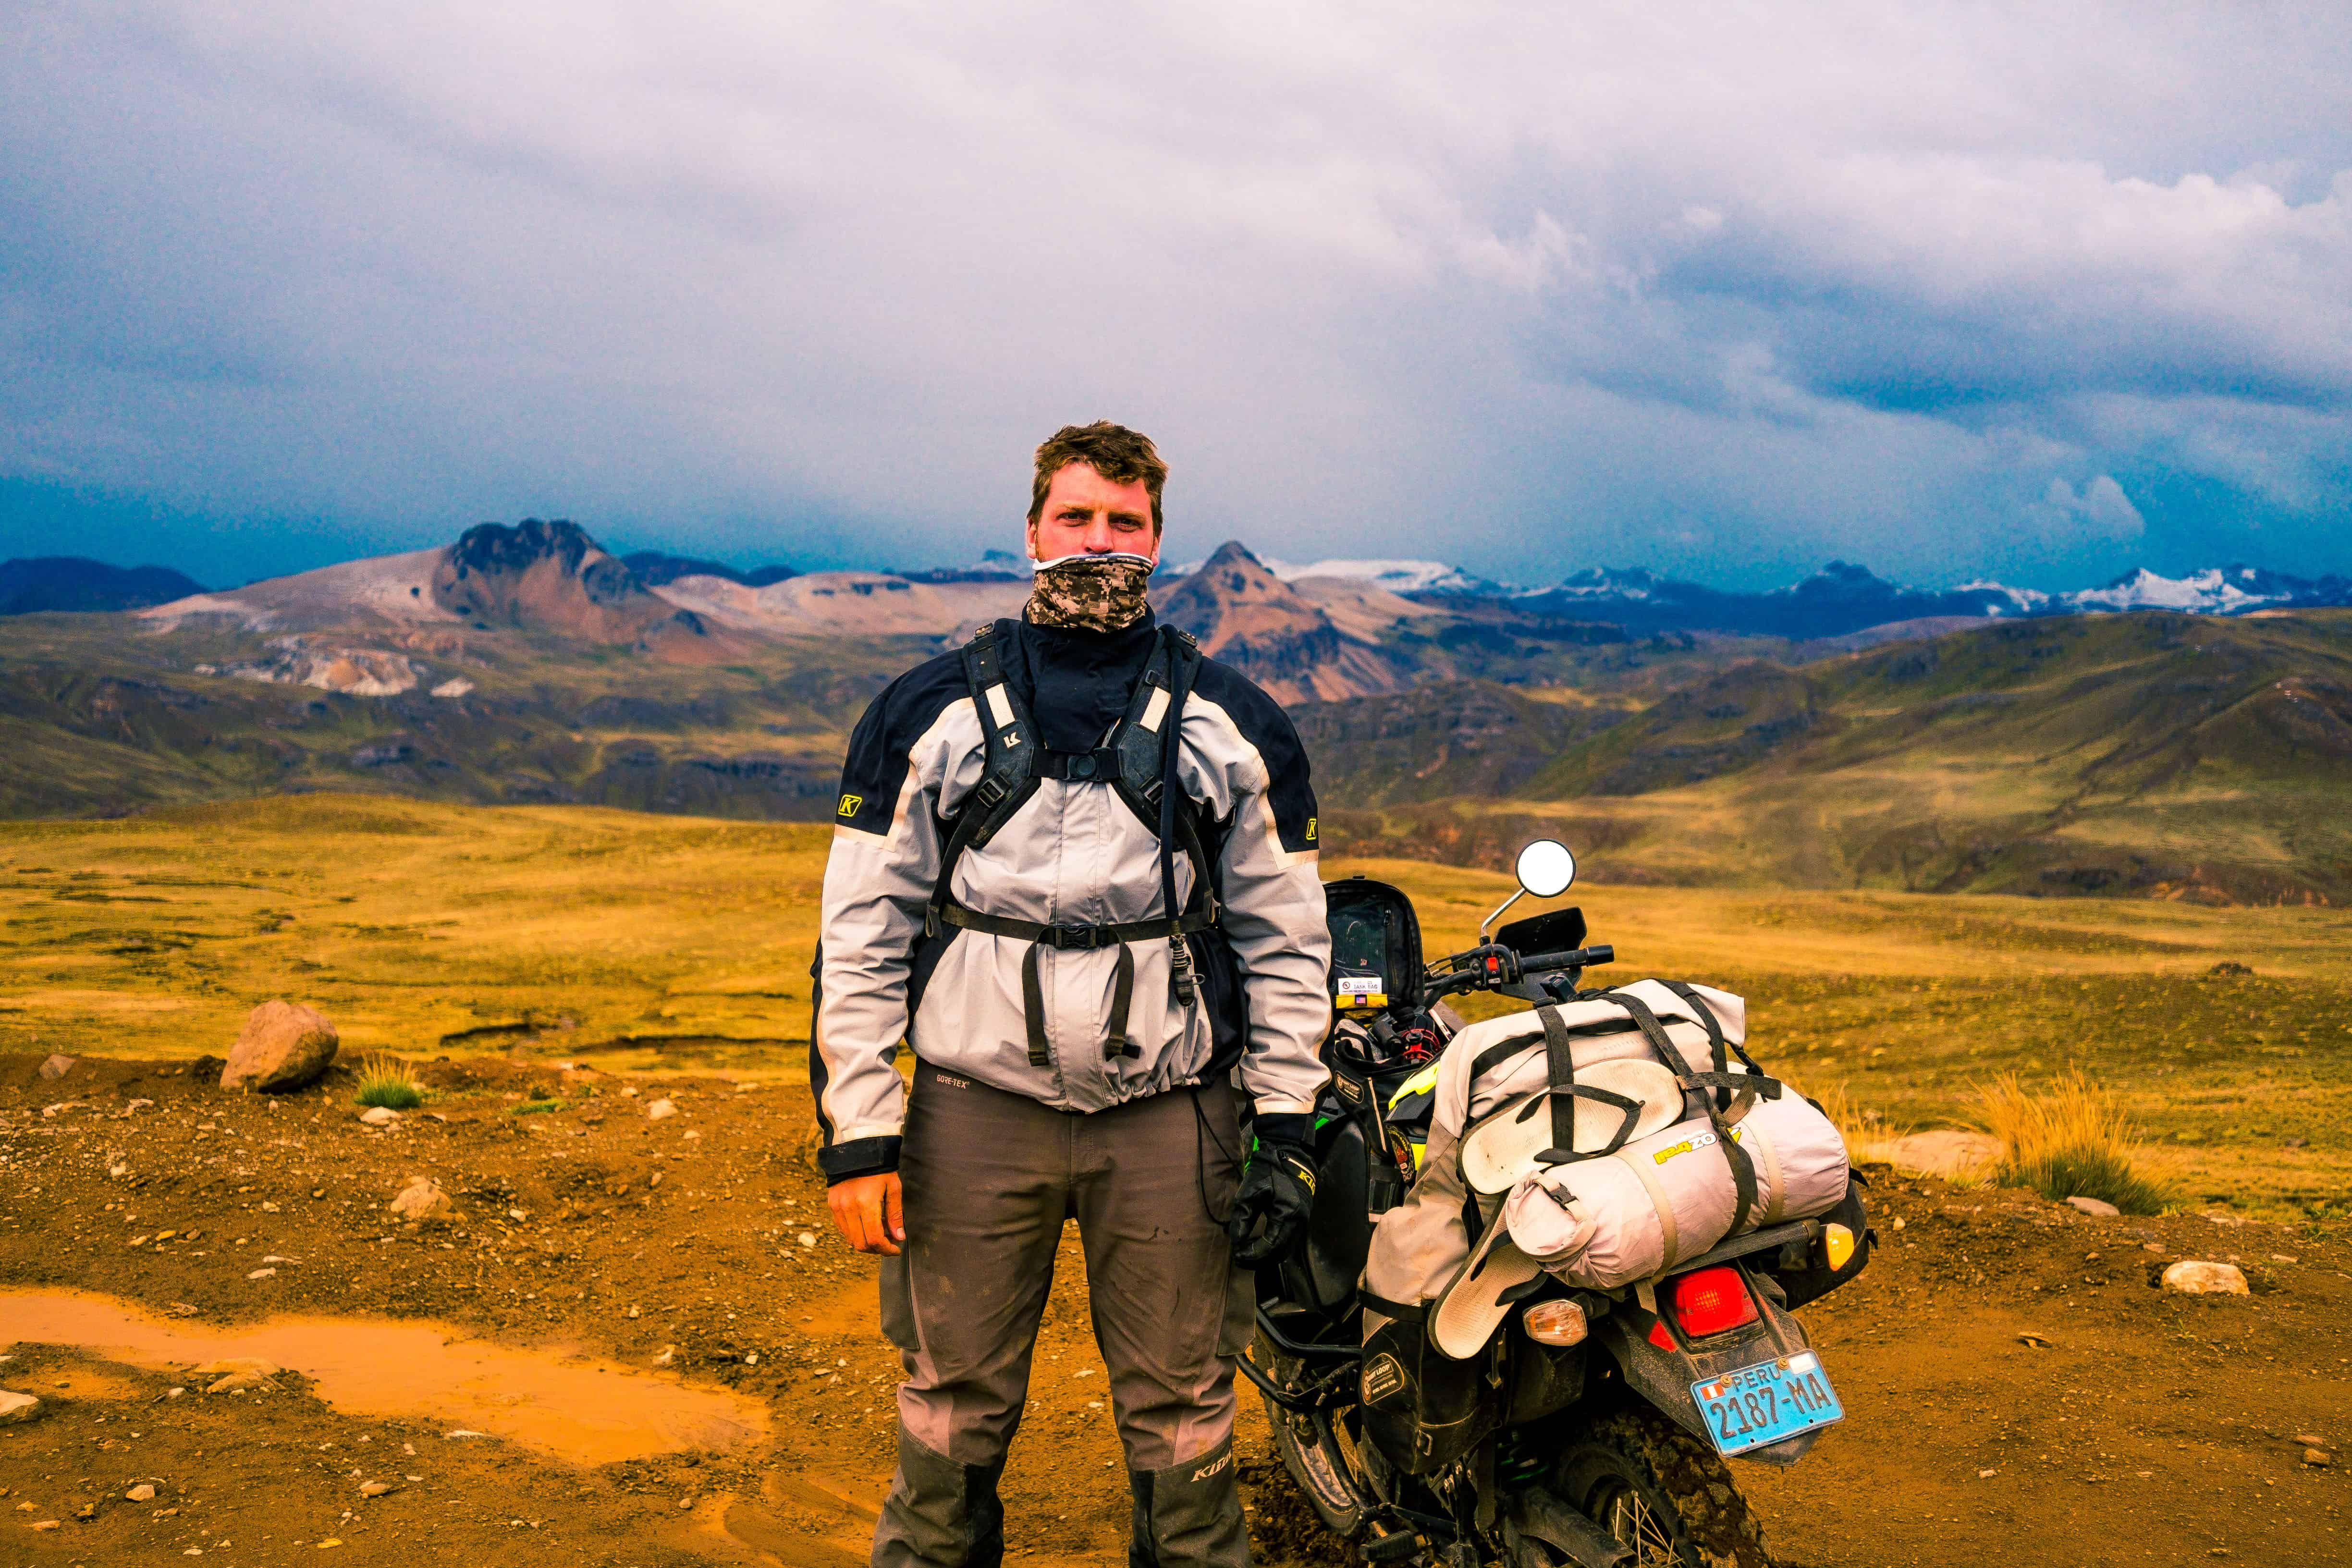 Toby Richardson standing in front of a snow capped mountain with his motorcycle in the Andes, Peru.